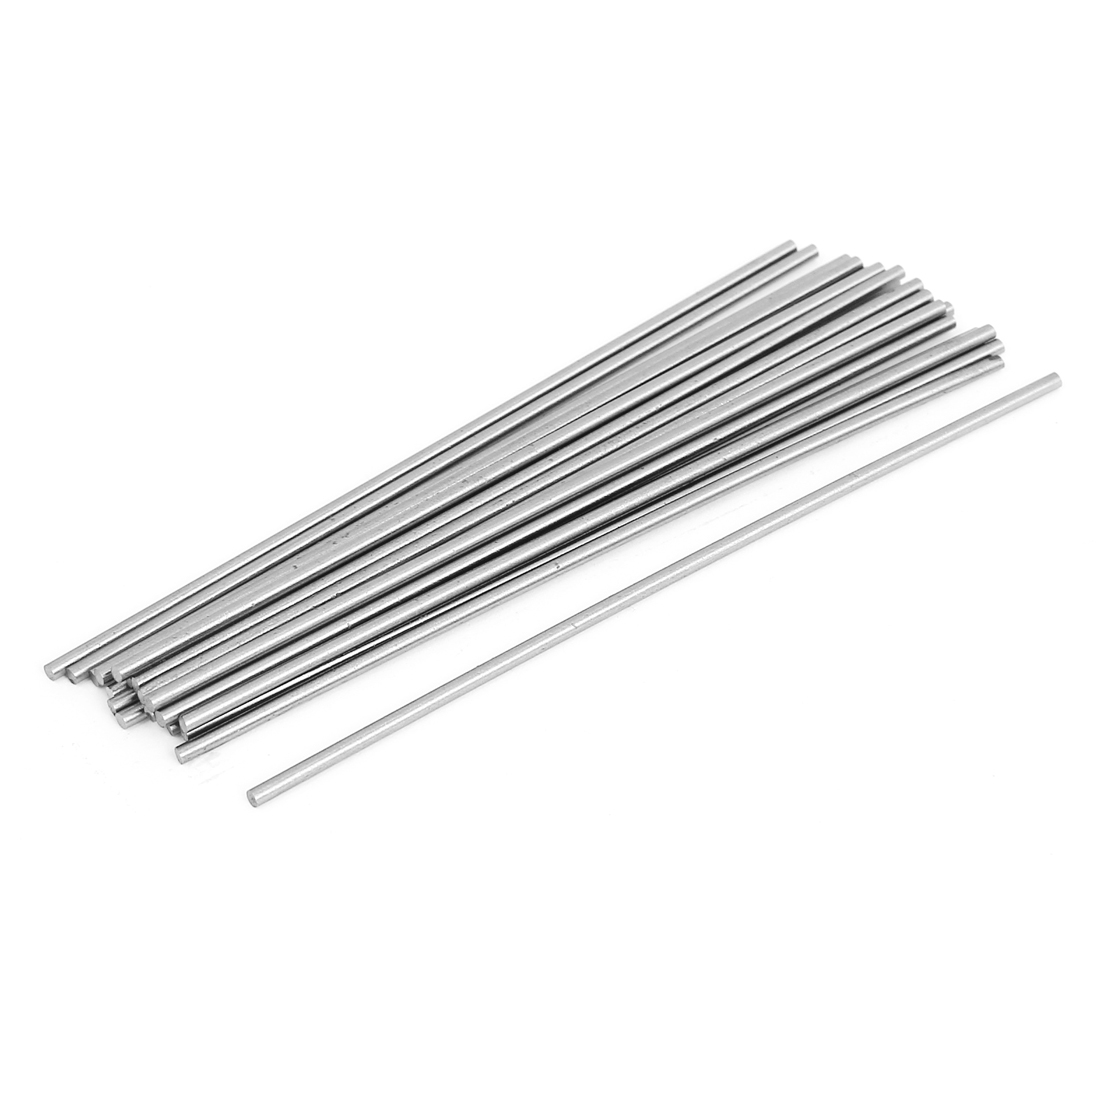 20 Pcs 1.8mm Dia 100mm Long Steel Round Stock Rod Lathe Tools Silver Tone